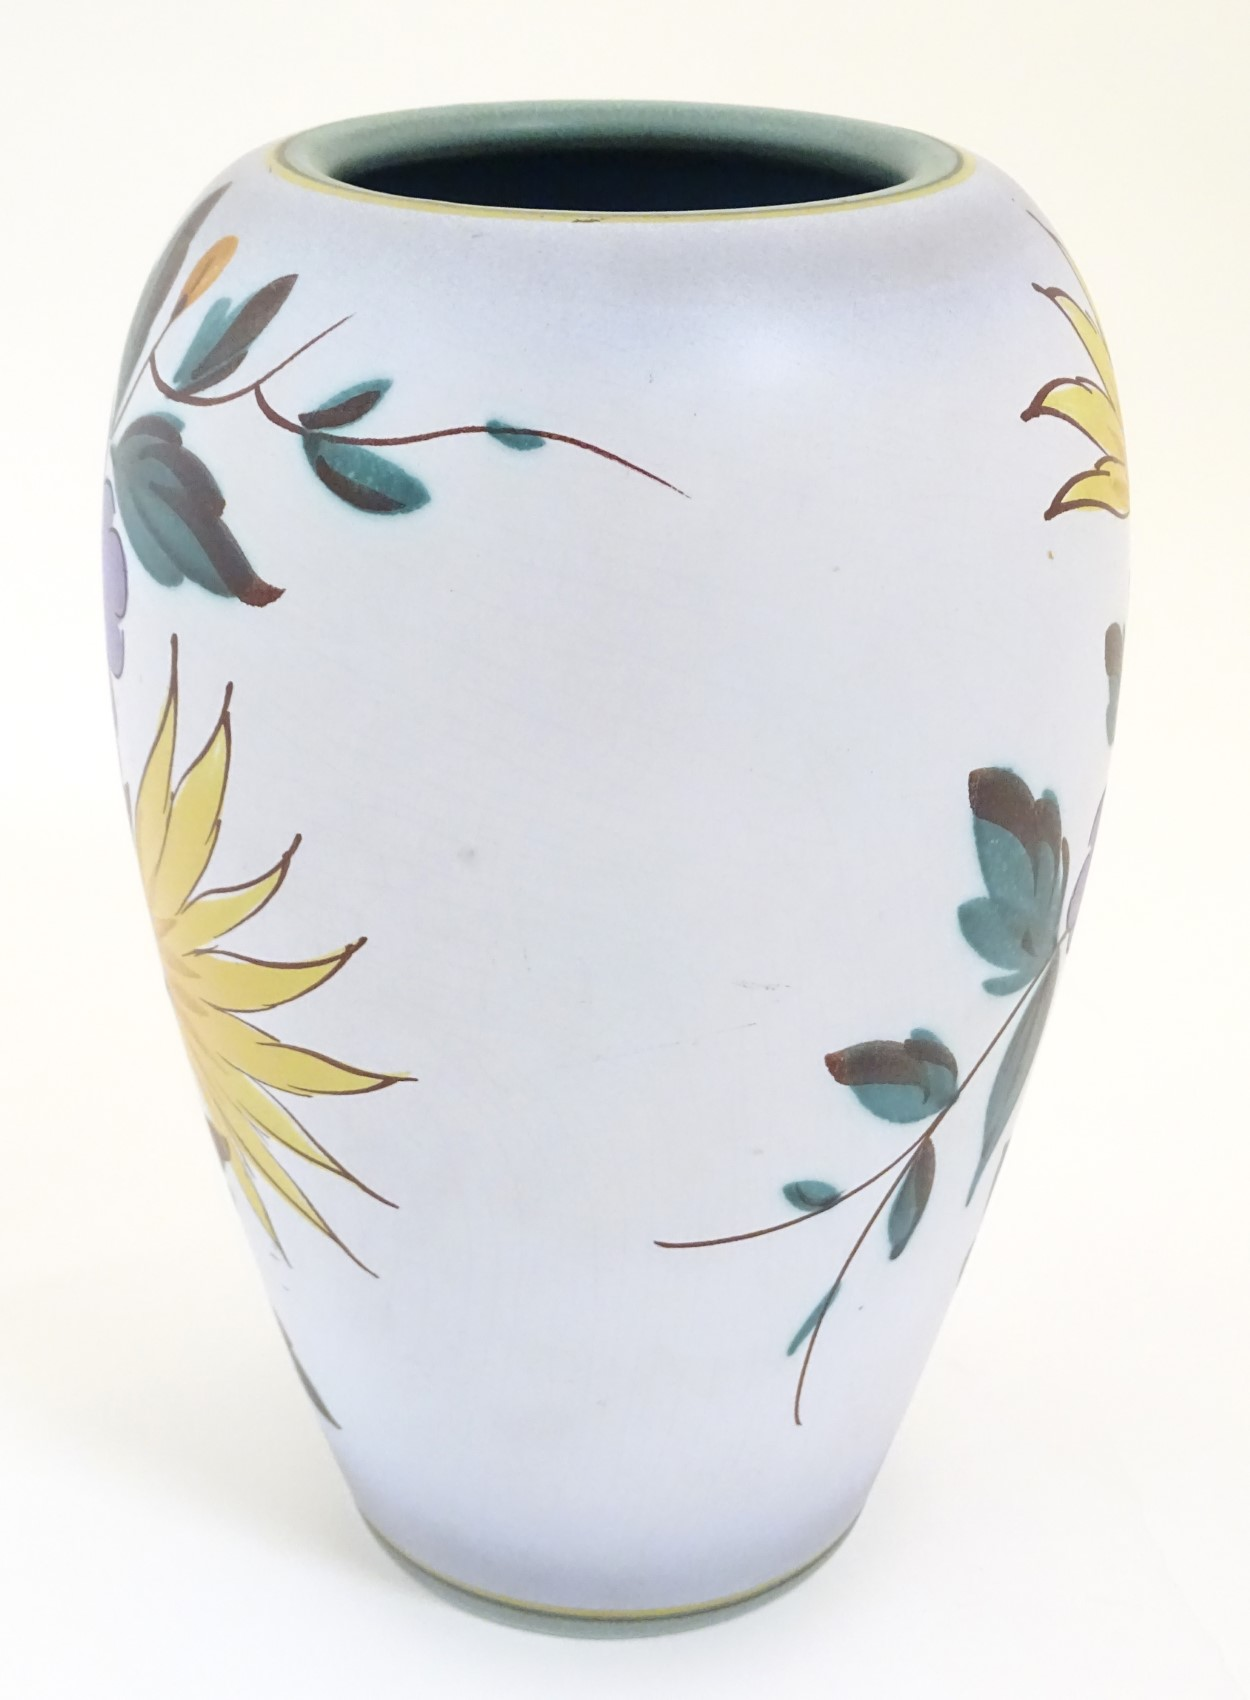 Lot 58 - A Viola pattern Gouda vase. Marked under 1493, Flora Gouda, Holland, Viola. Height: approx.